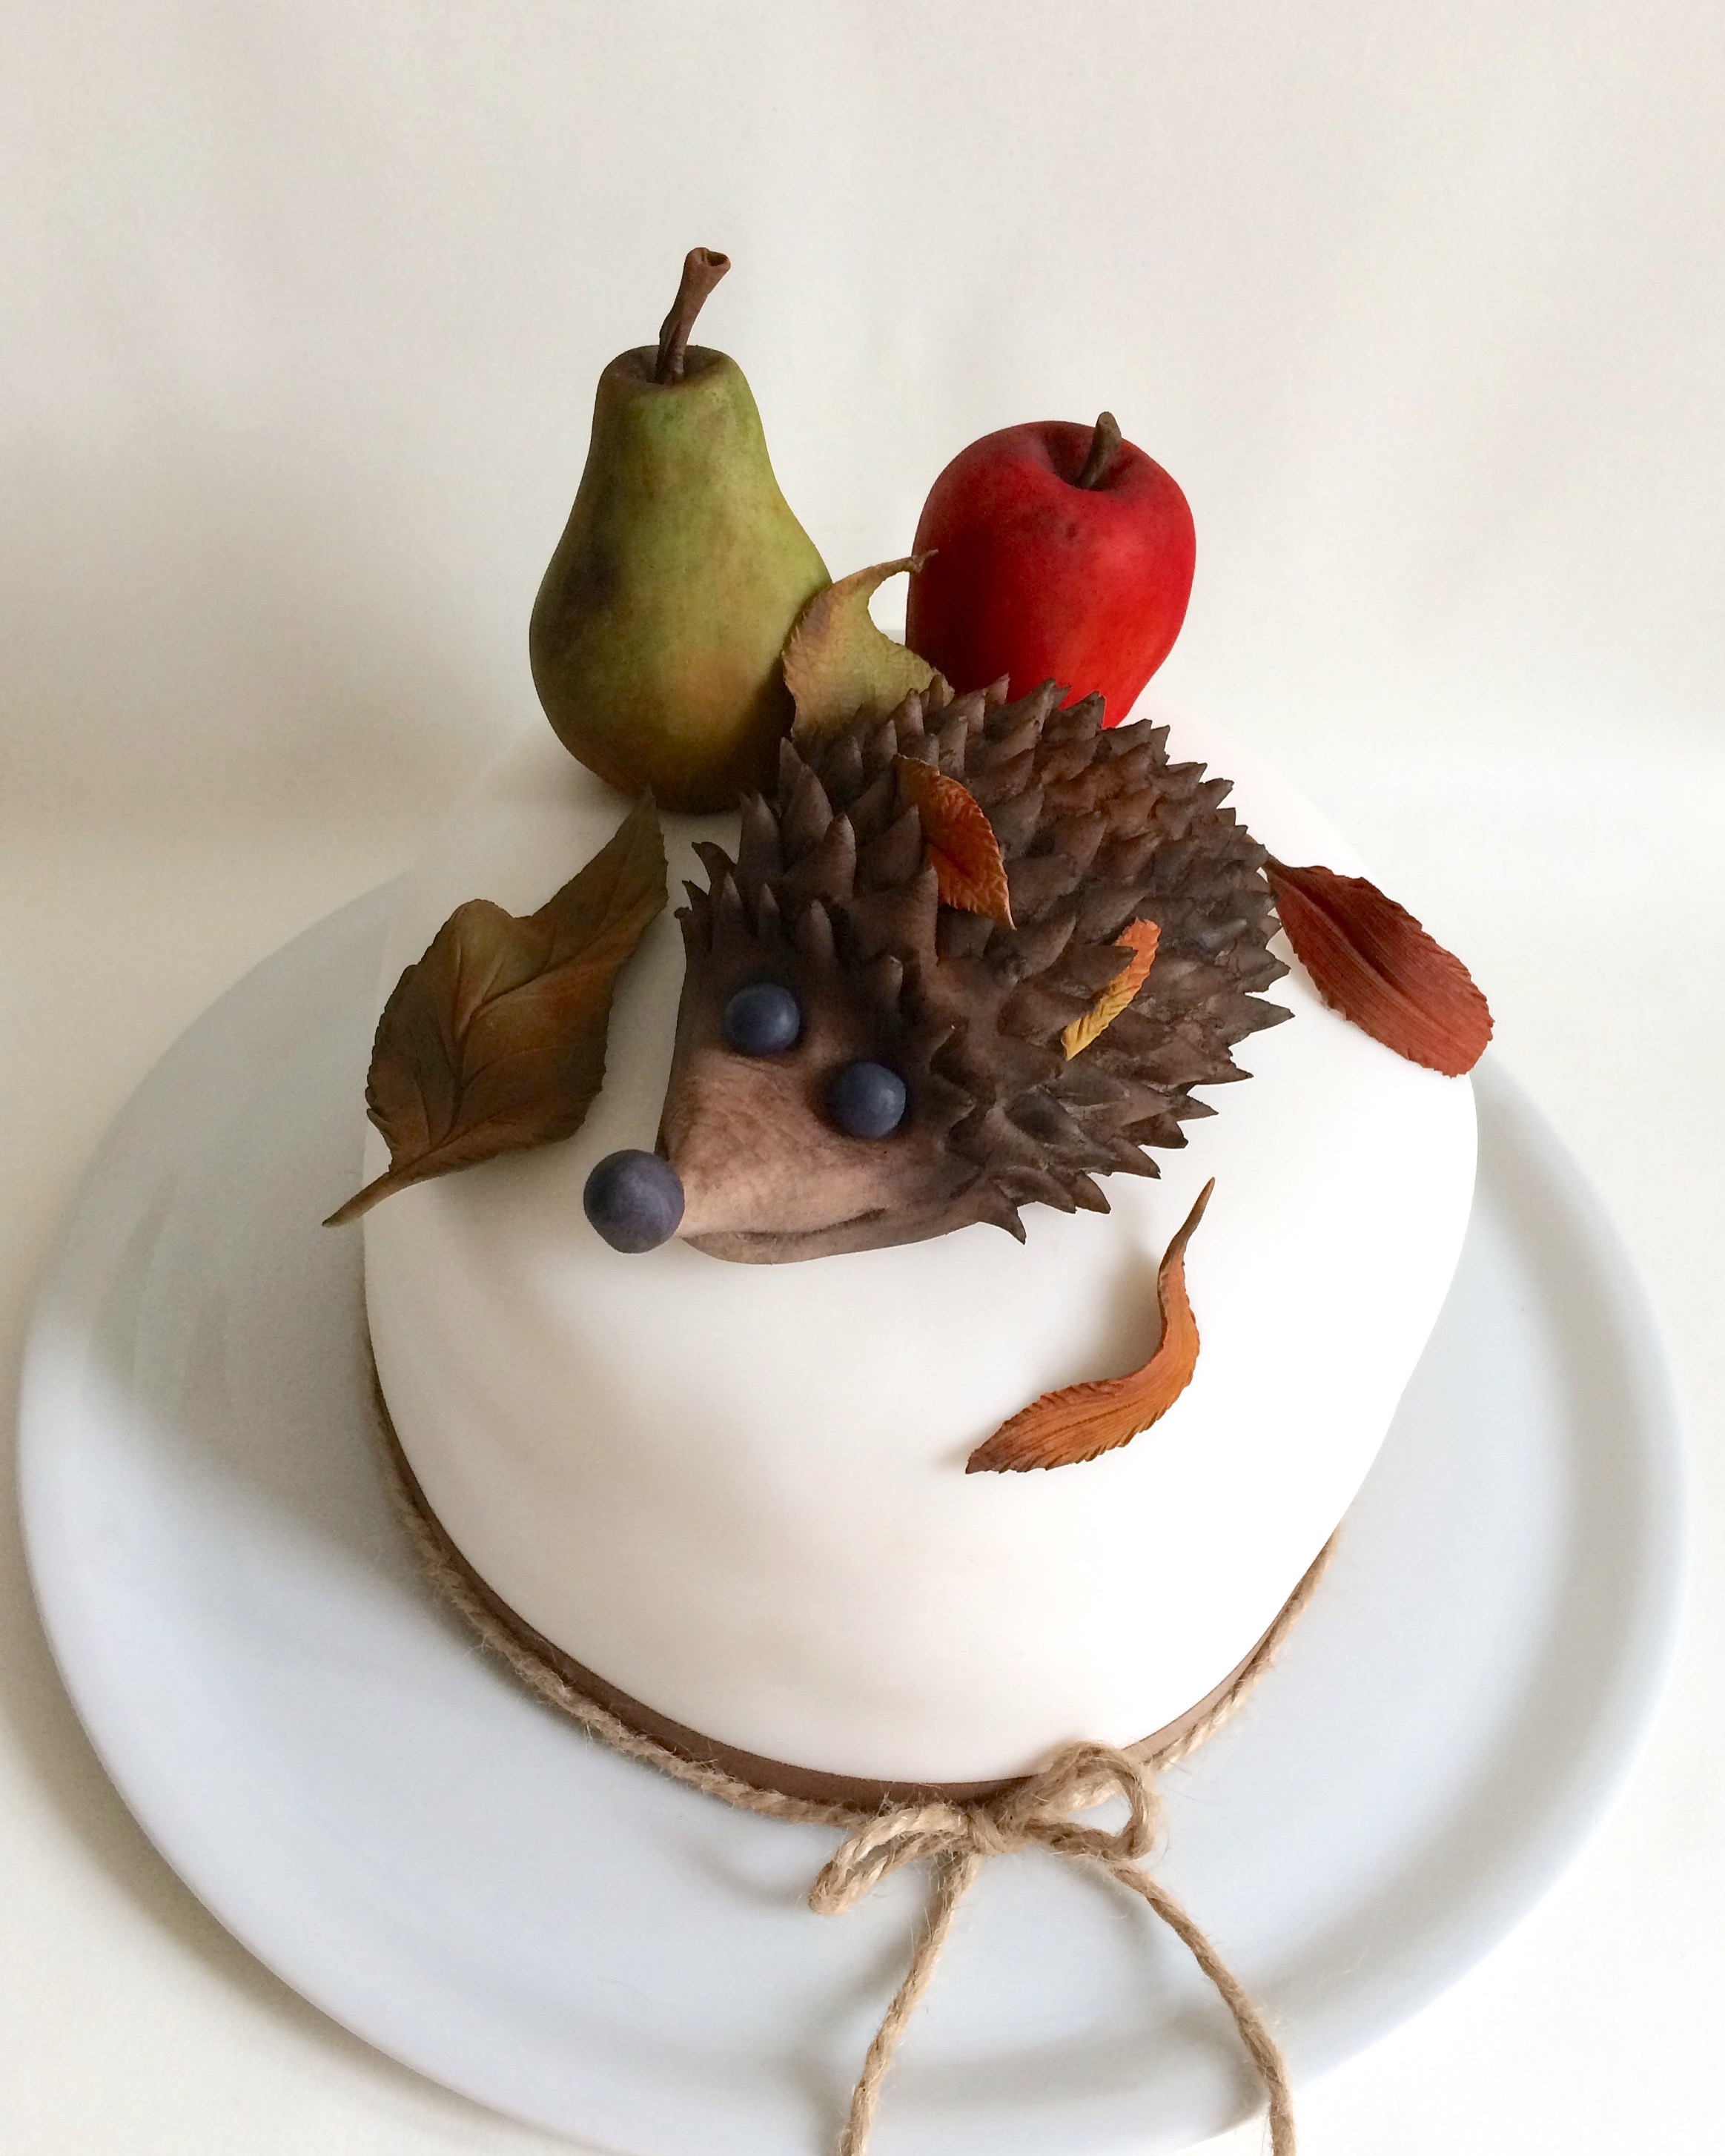 Mini cake with fondant hedgehog